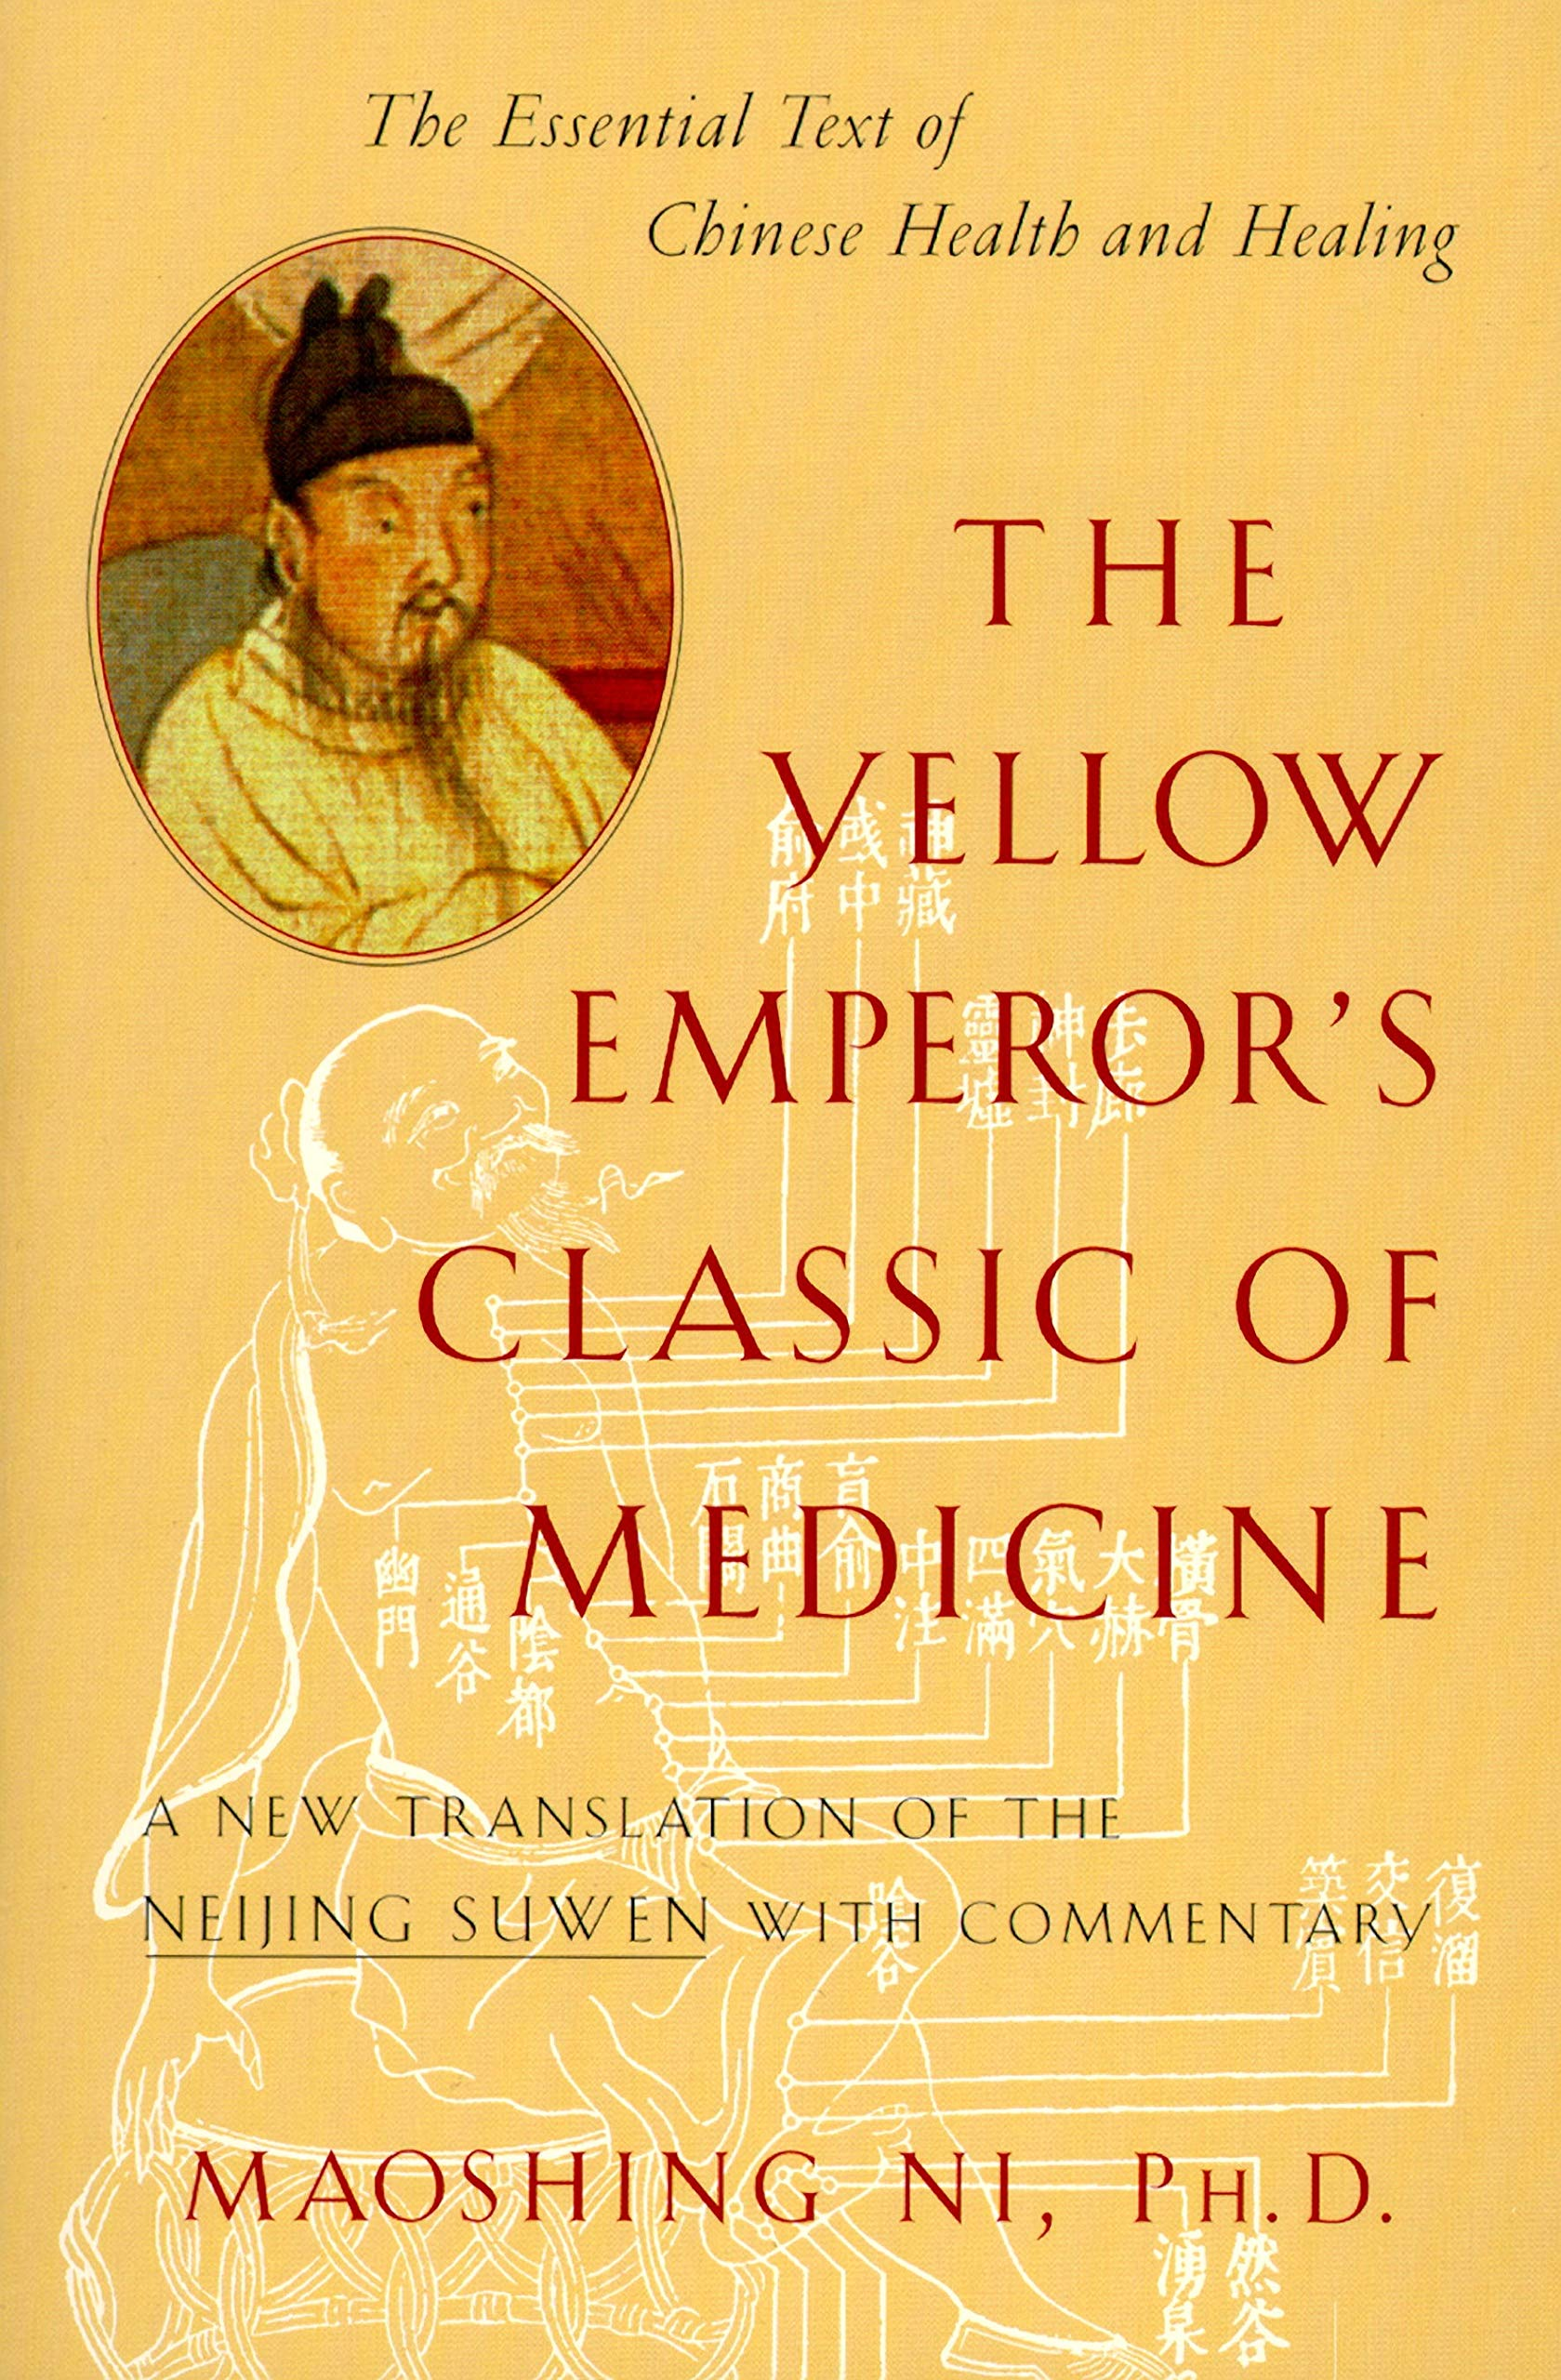 The Yellow Emperor's Classic of Medicine: A New Translation of the Neijing Suwen with Commentary